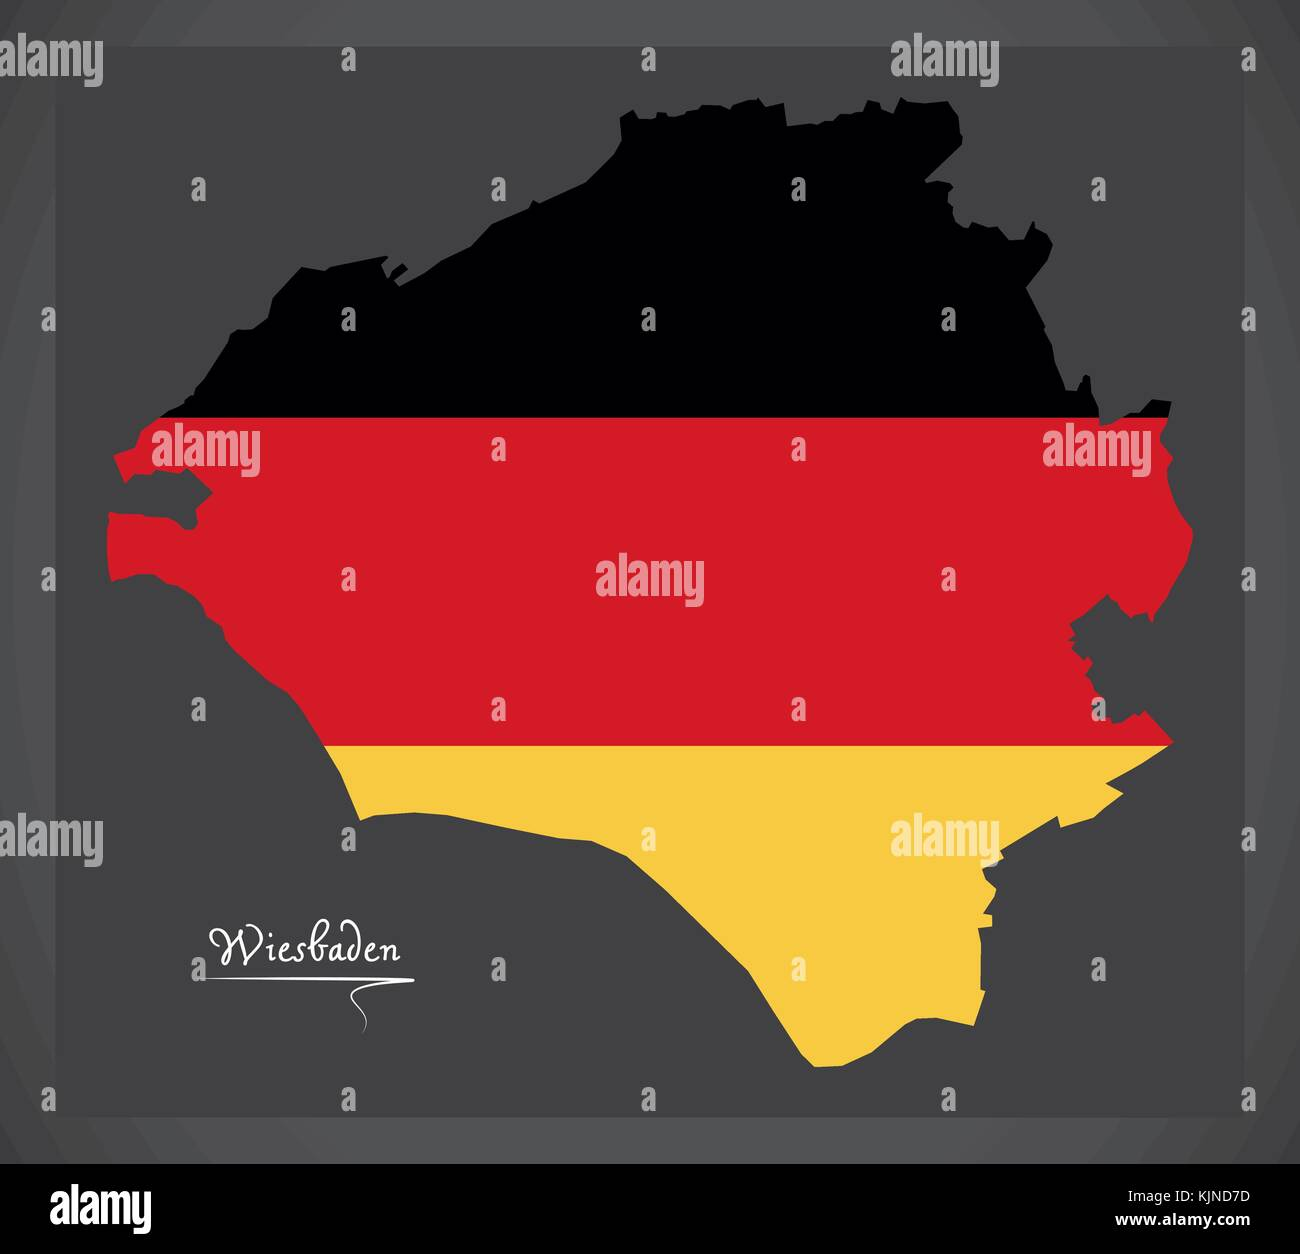 Wiesbaden City map with German national flag illustration Stock